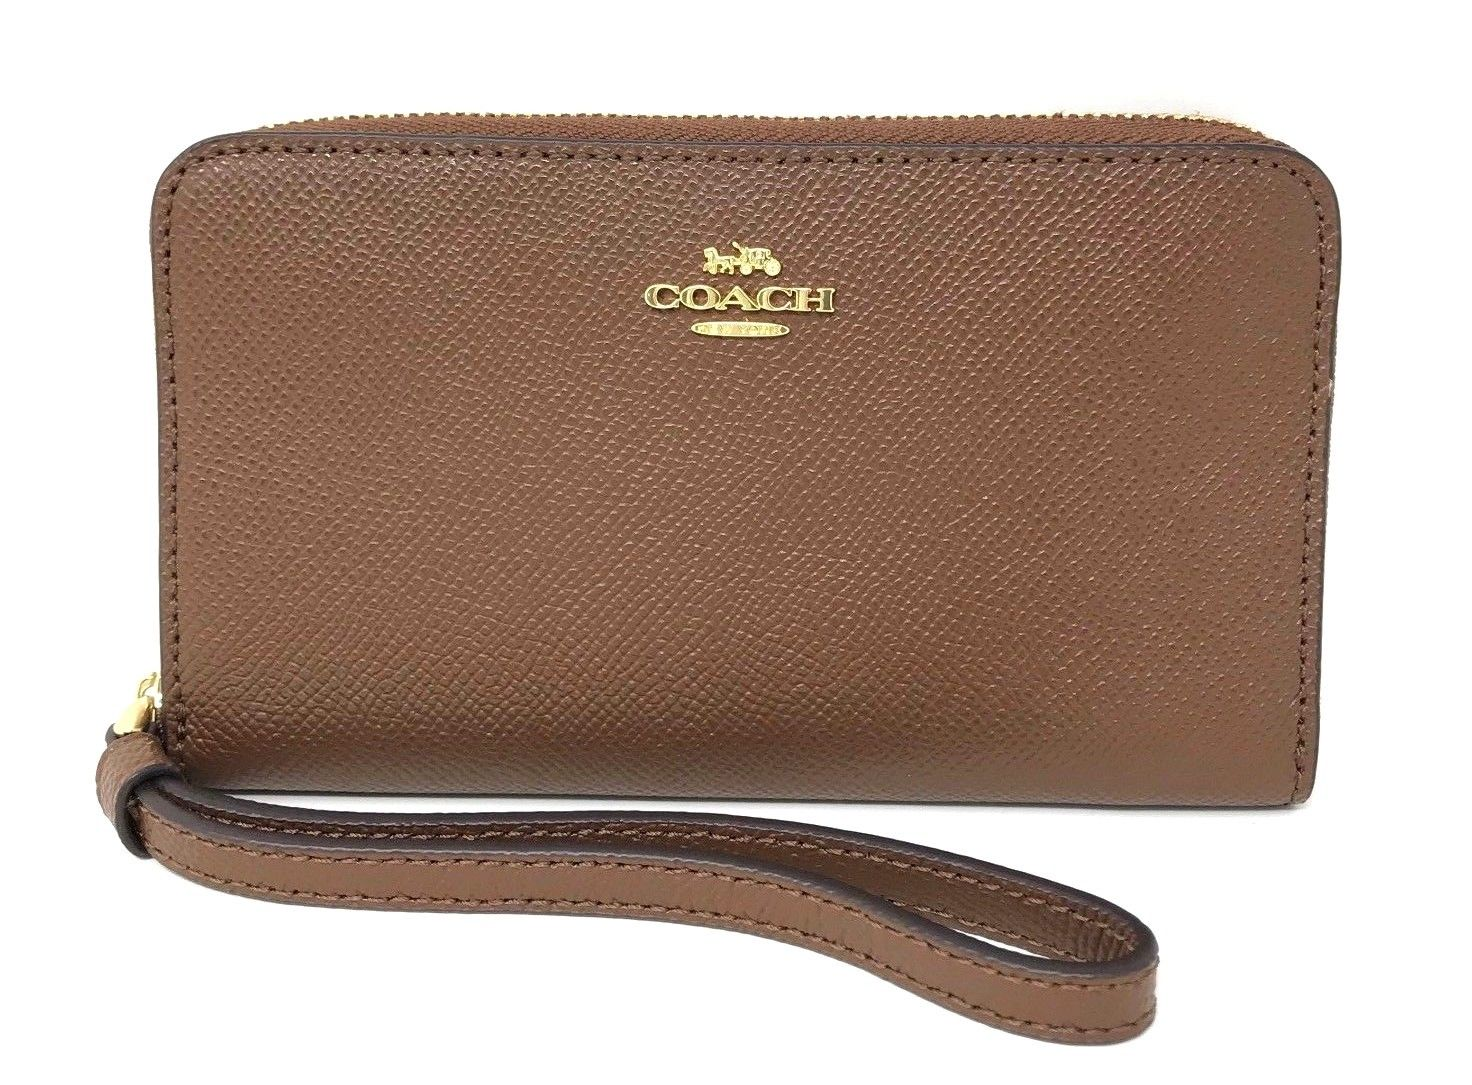 Coach Crossgrain Saddle Leather Phone Wallet Clutch F58053 $165